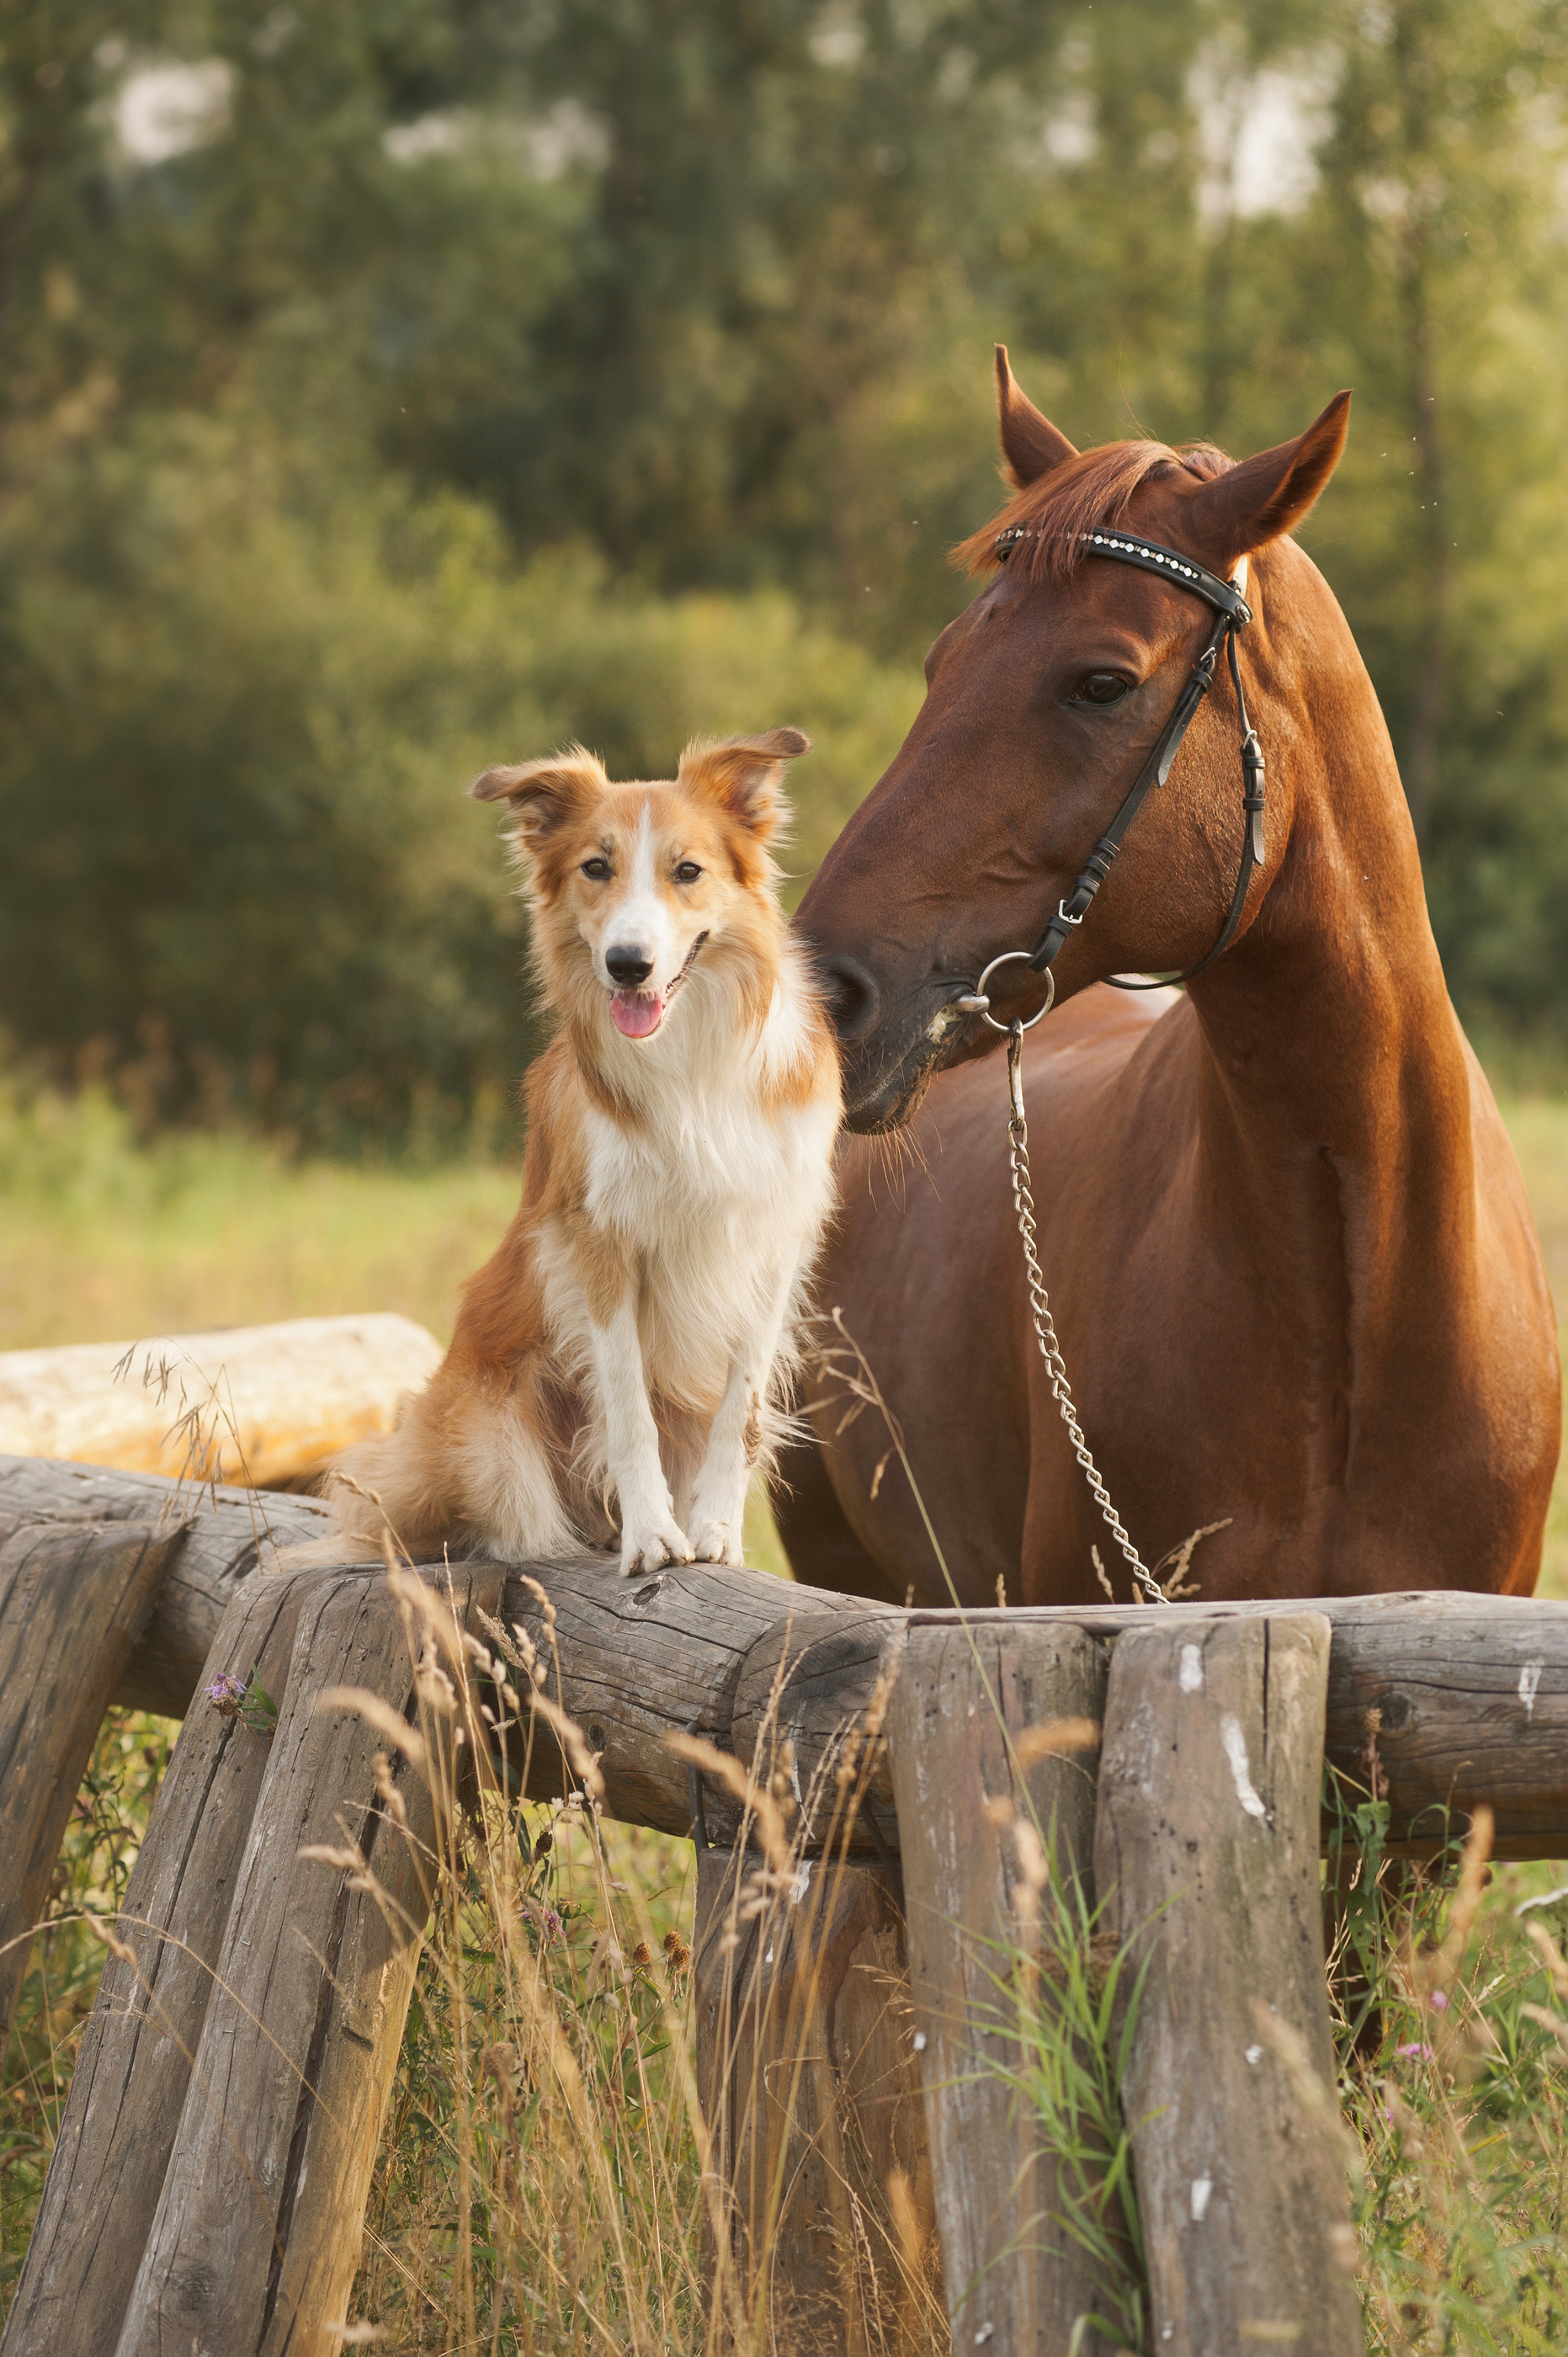 Baby Girl Nursery Wallpaper Borders Horses And Dogs Together Free Wallpaper